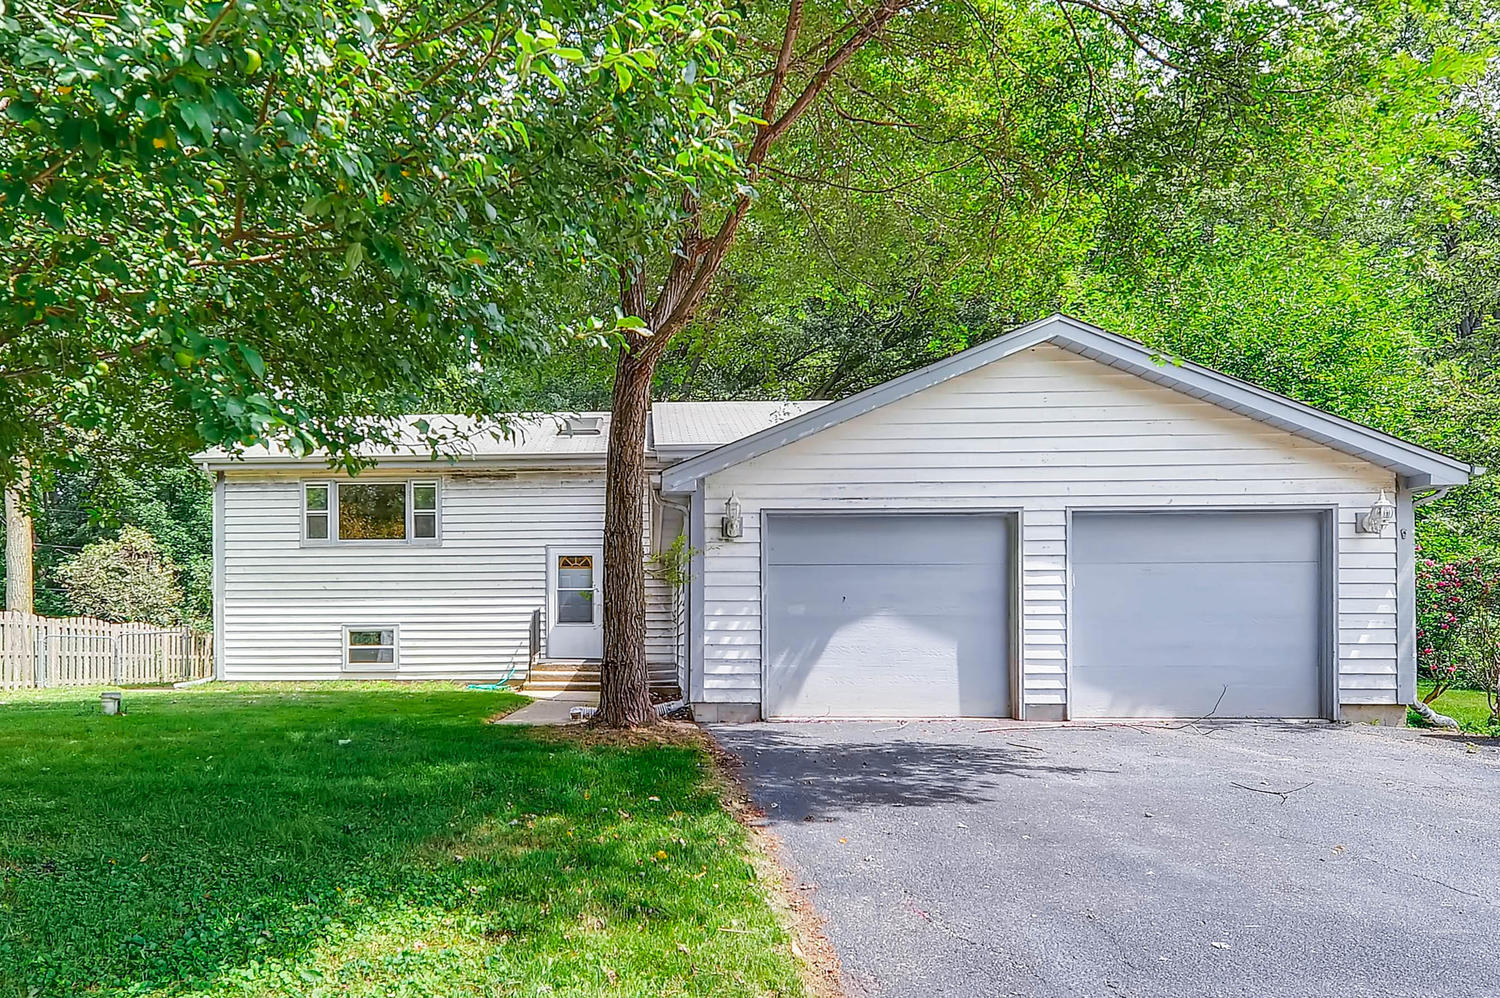 Photo of 332 Hollywood Terrace, Lakemoor, IL 60051